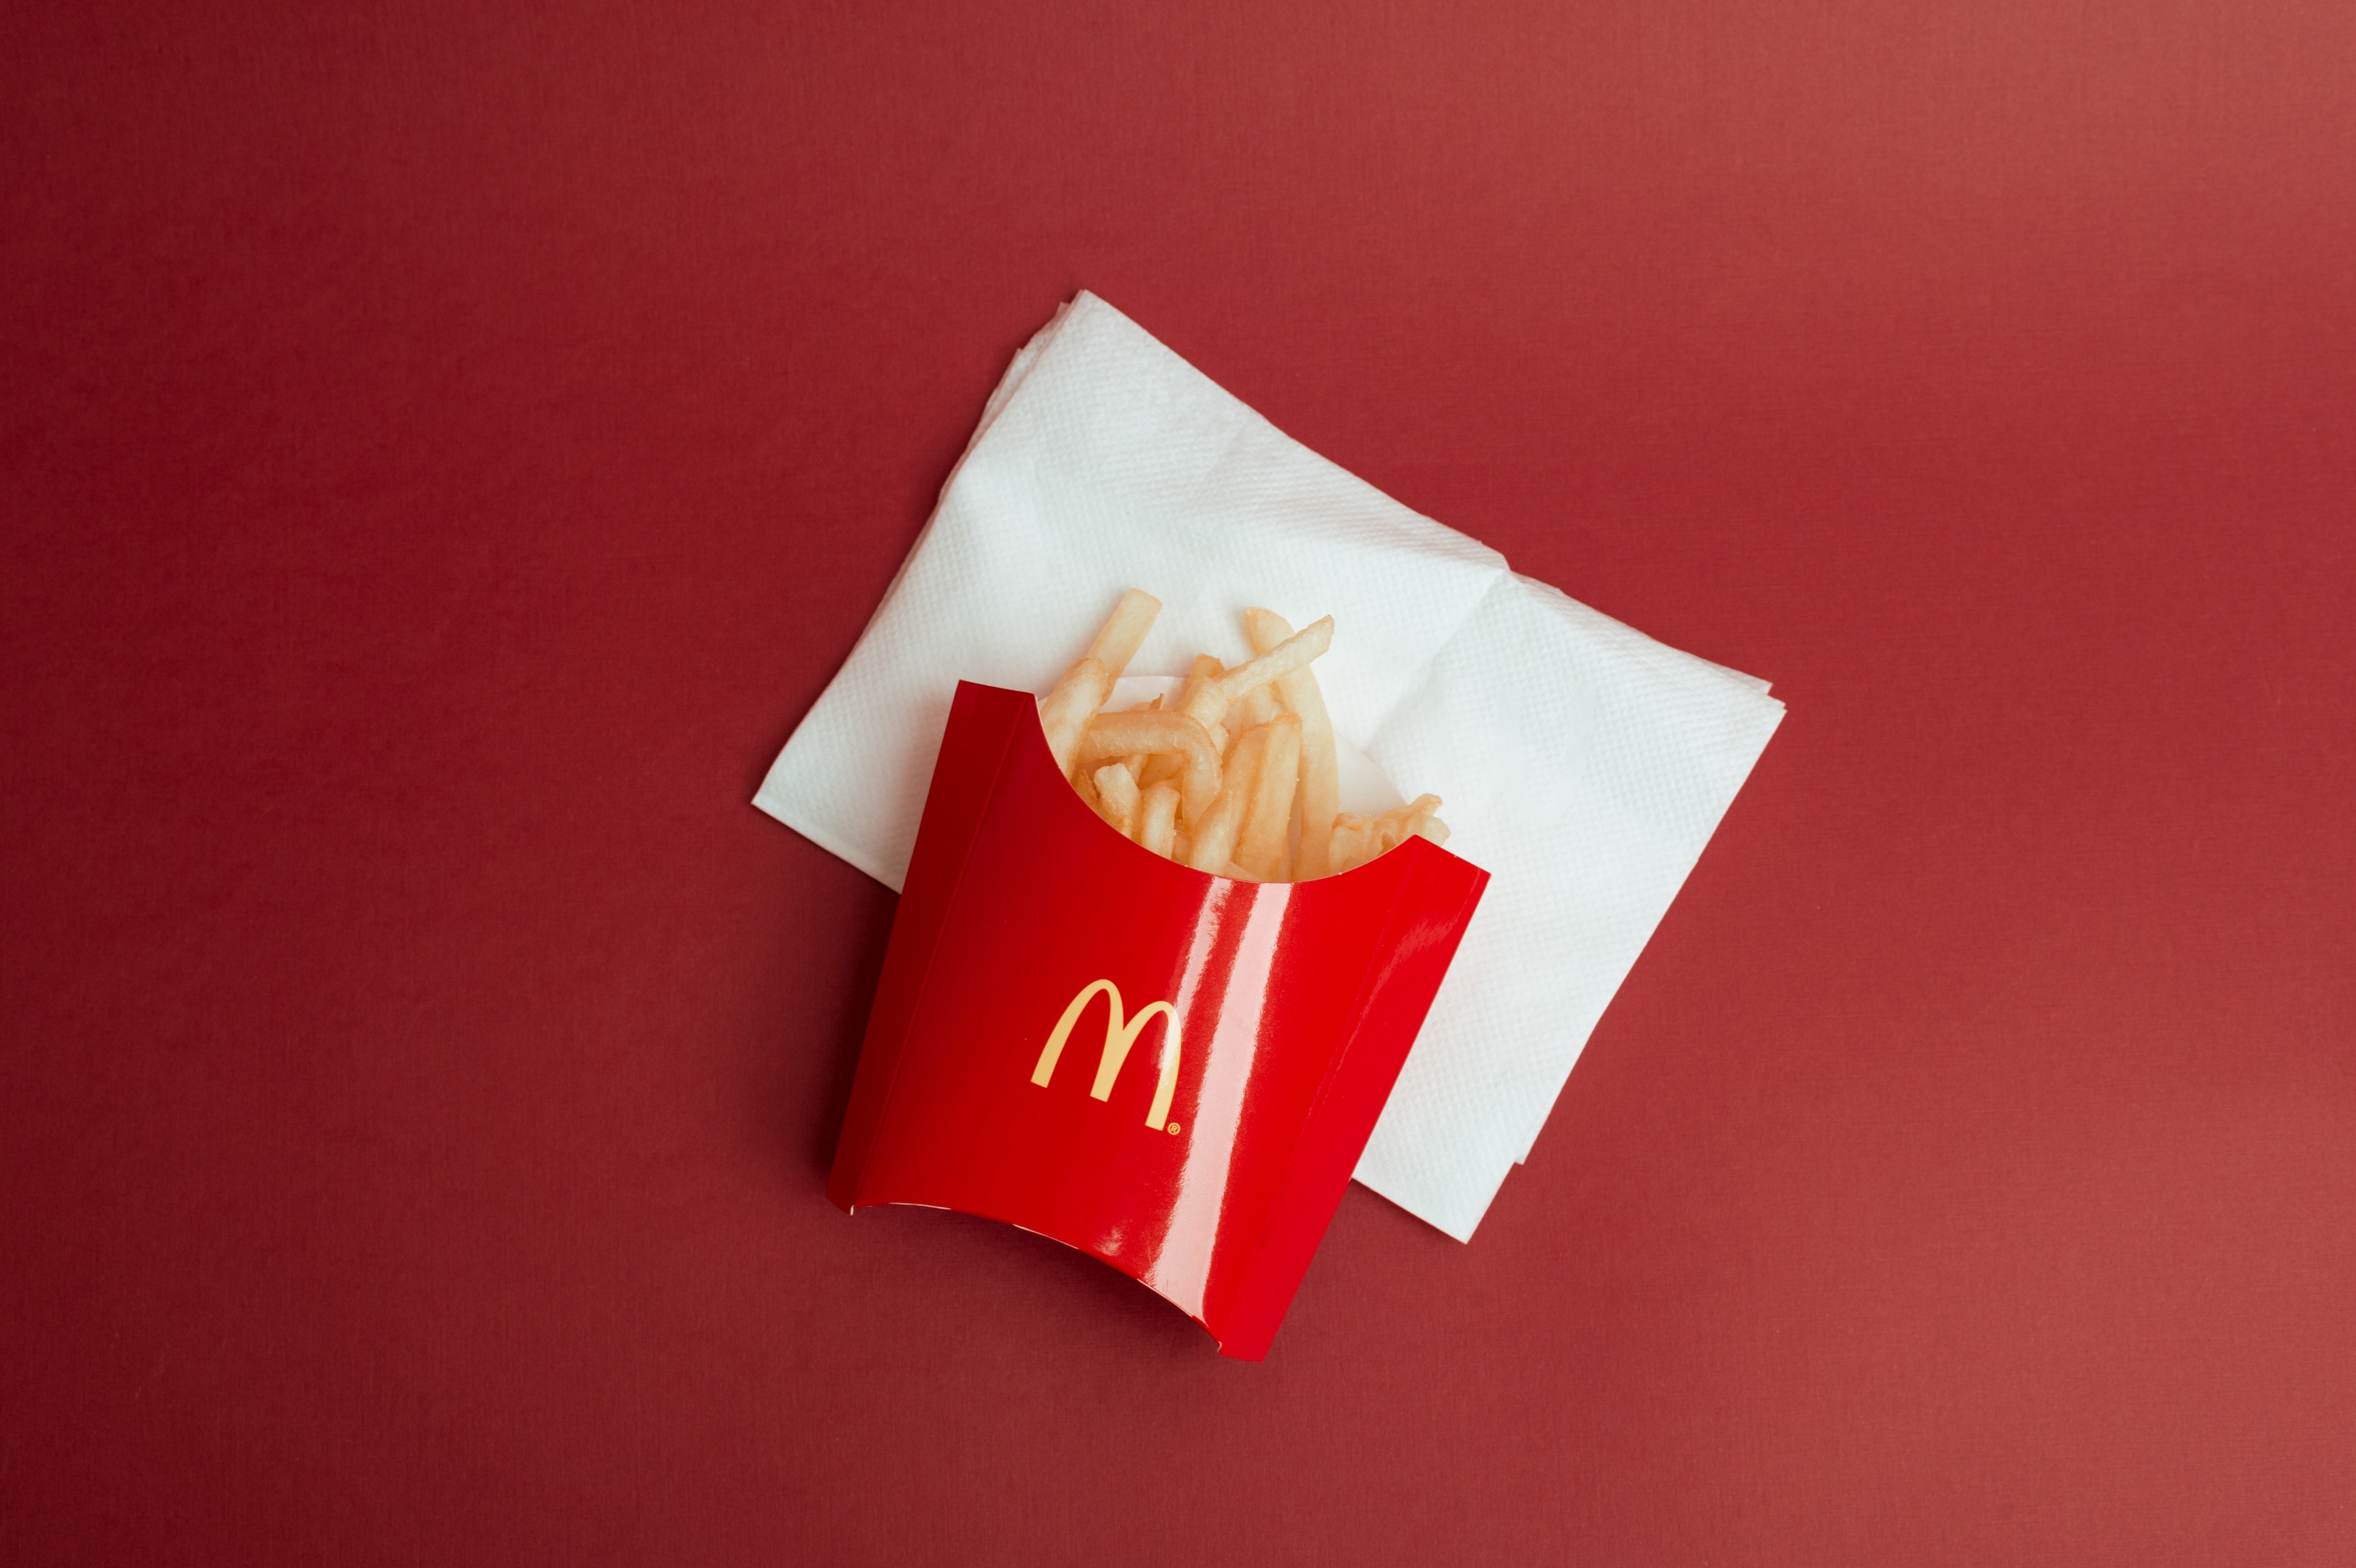 McDonald's french fries on a red table